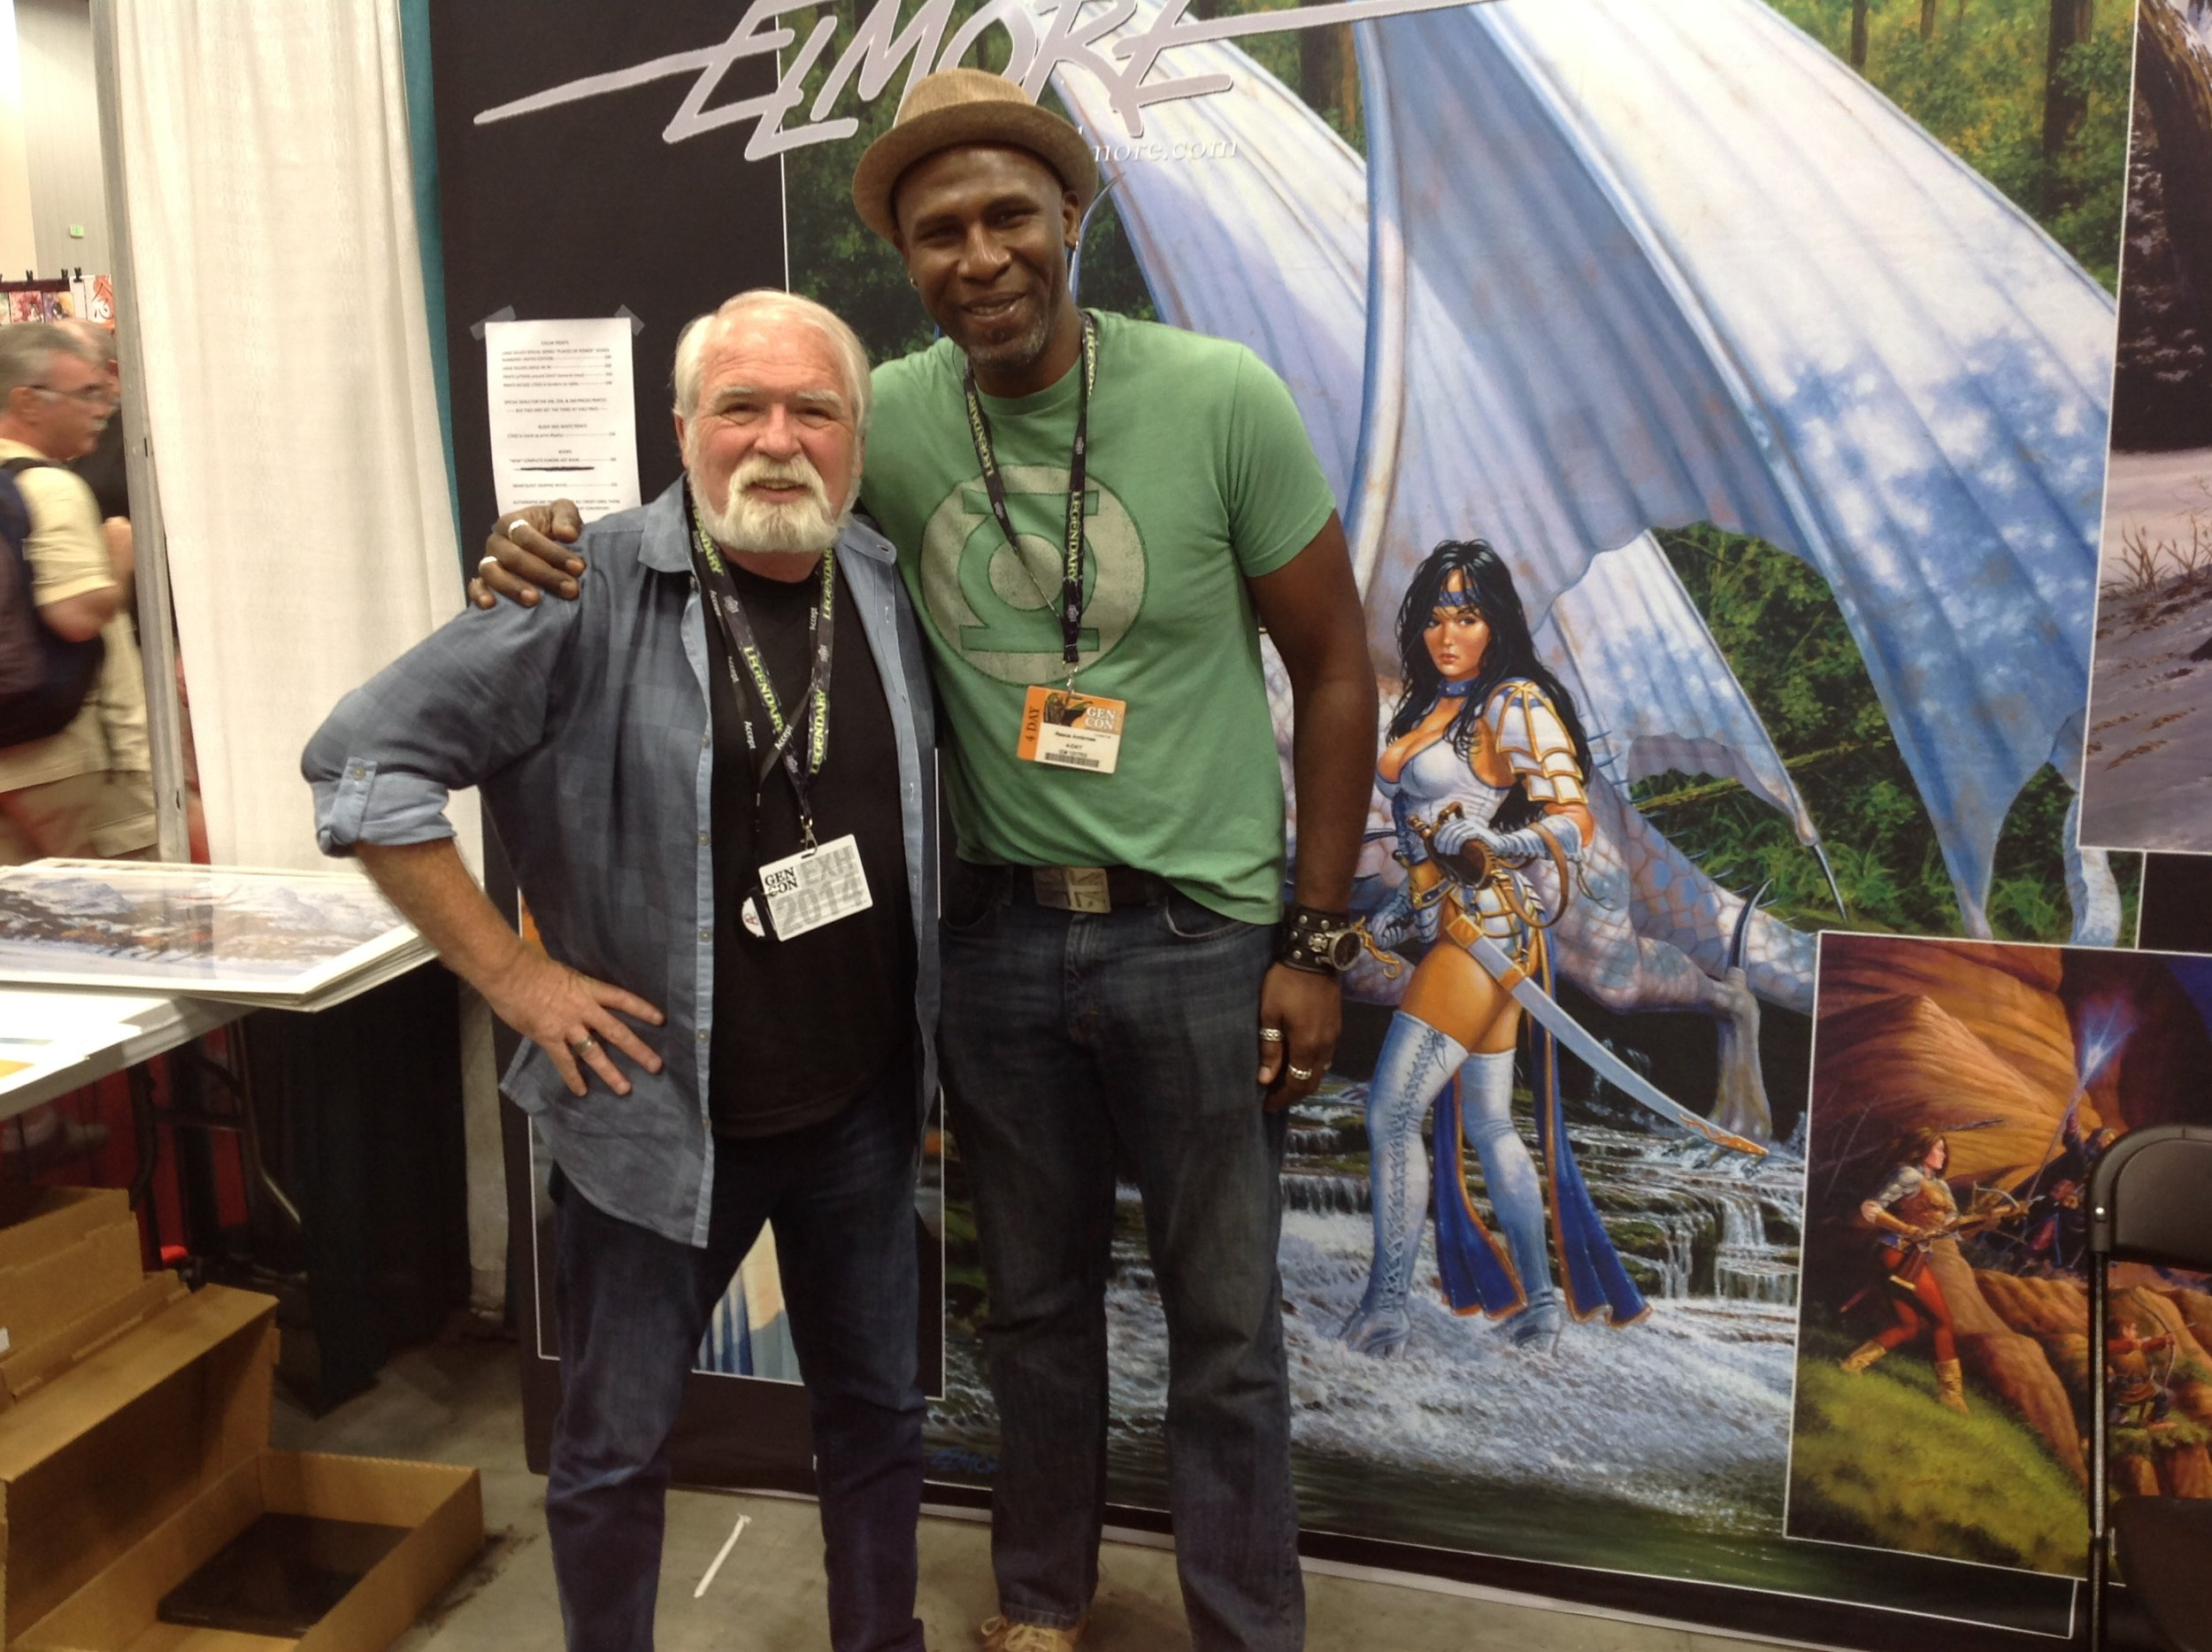 Larry Elmore and me